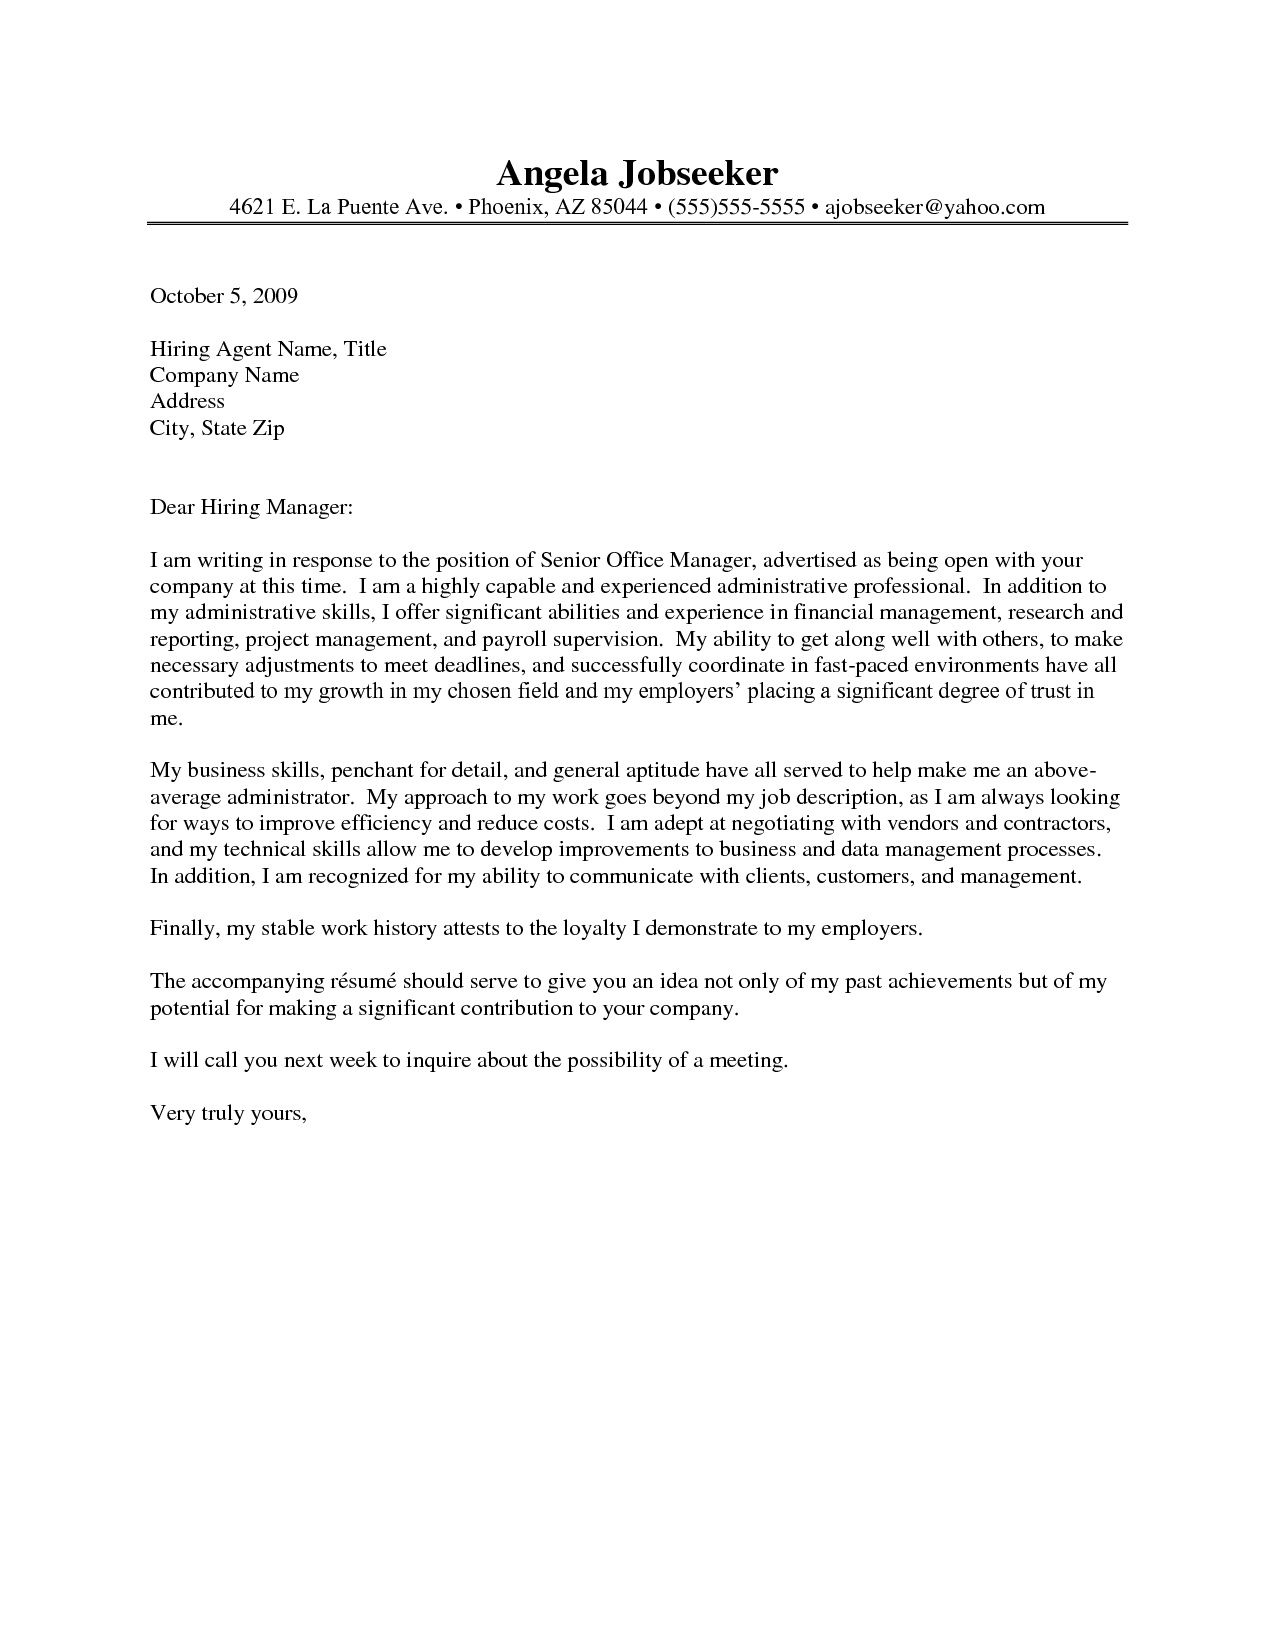 free sample cover letter for administrative assistant position administrative assistant resume cover letter http